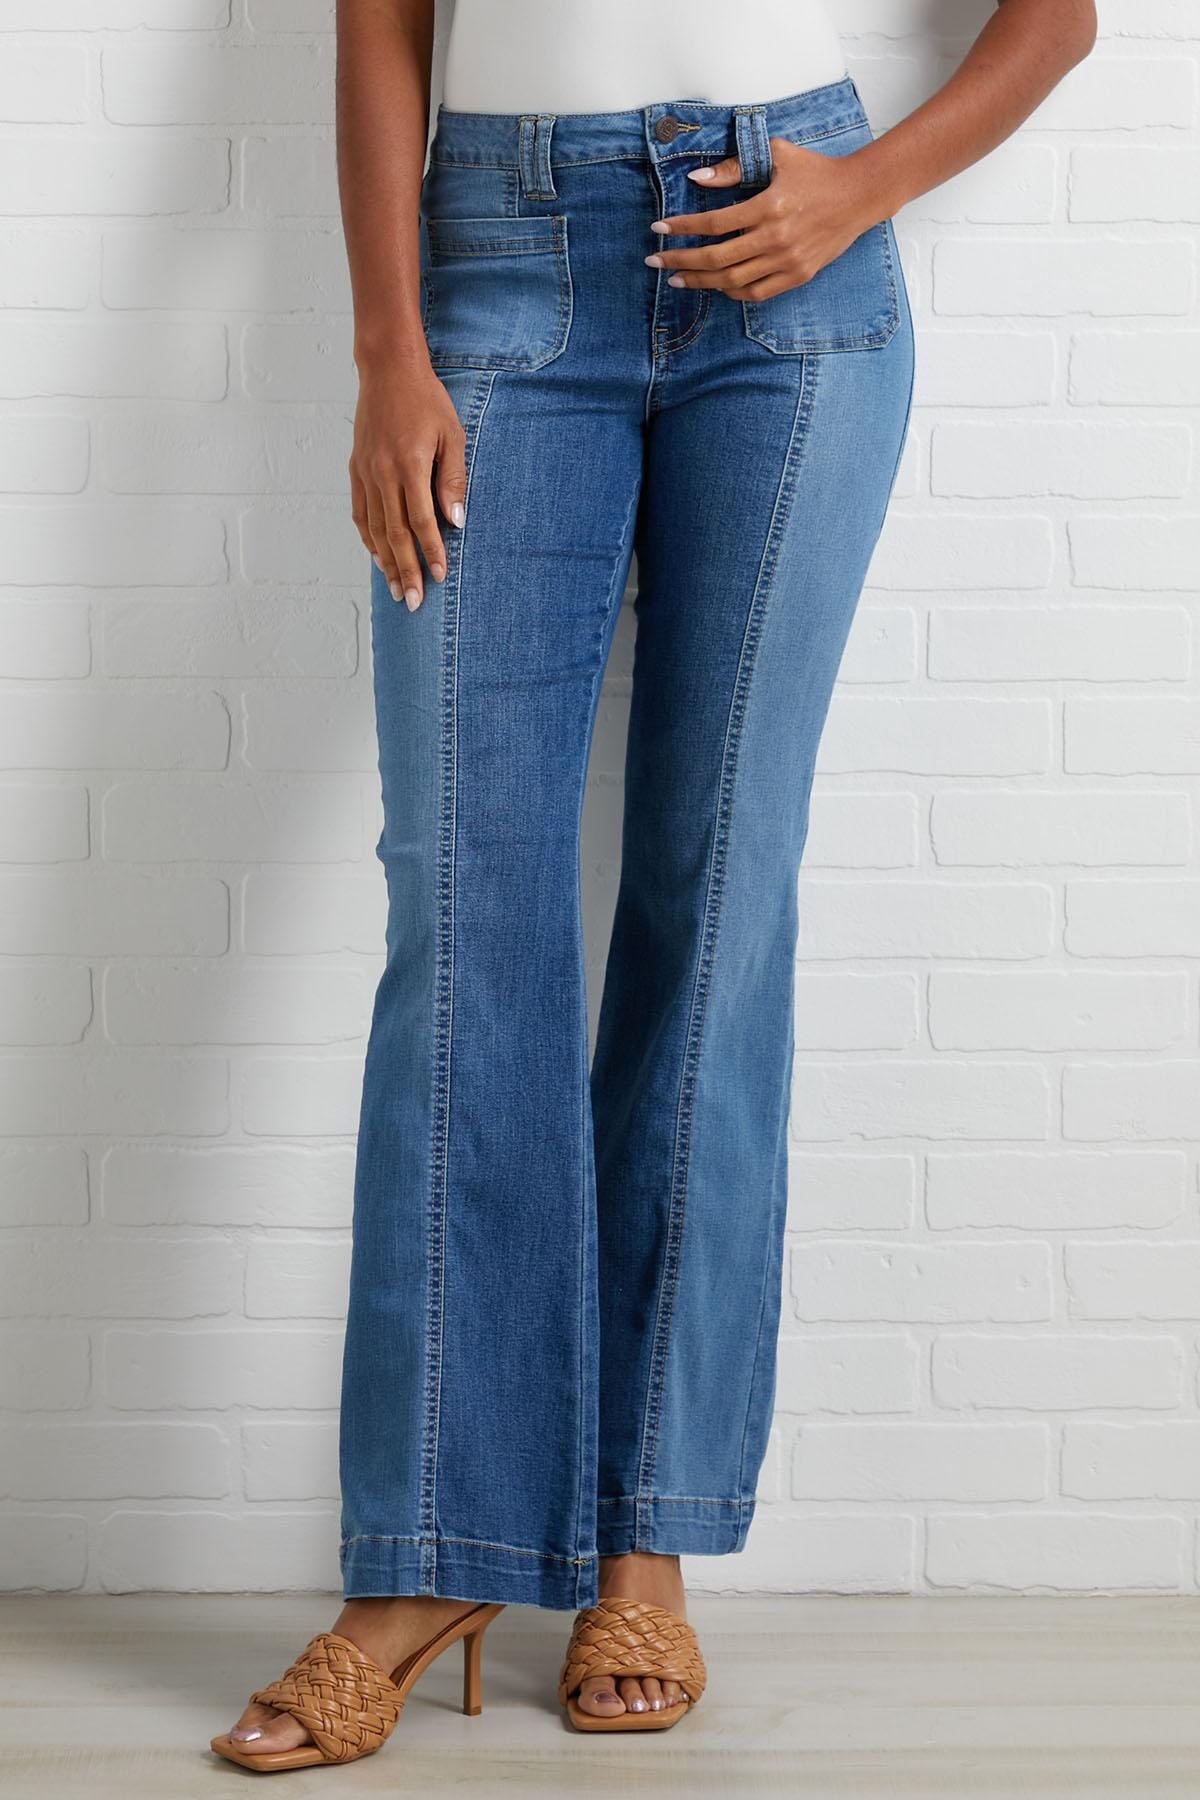 Take The High Road Jeans